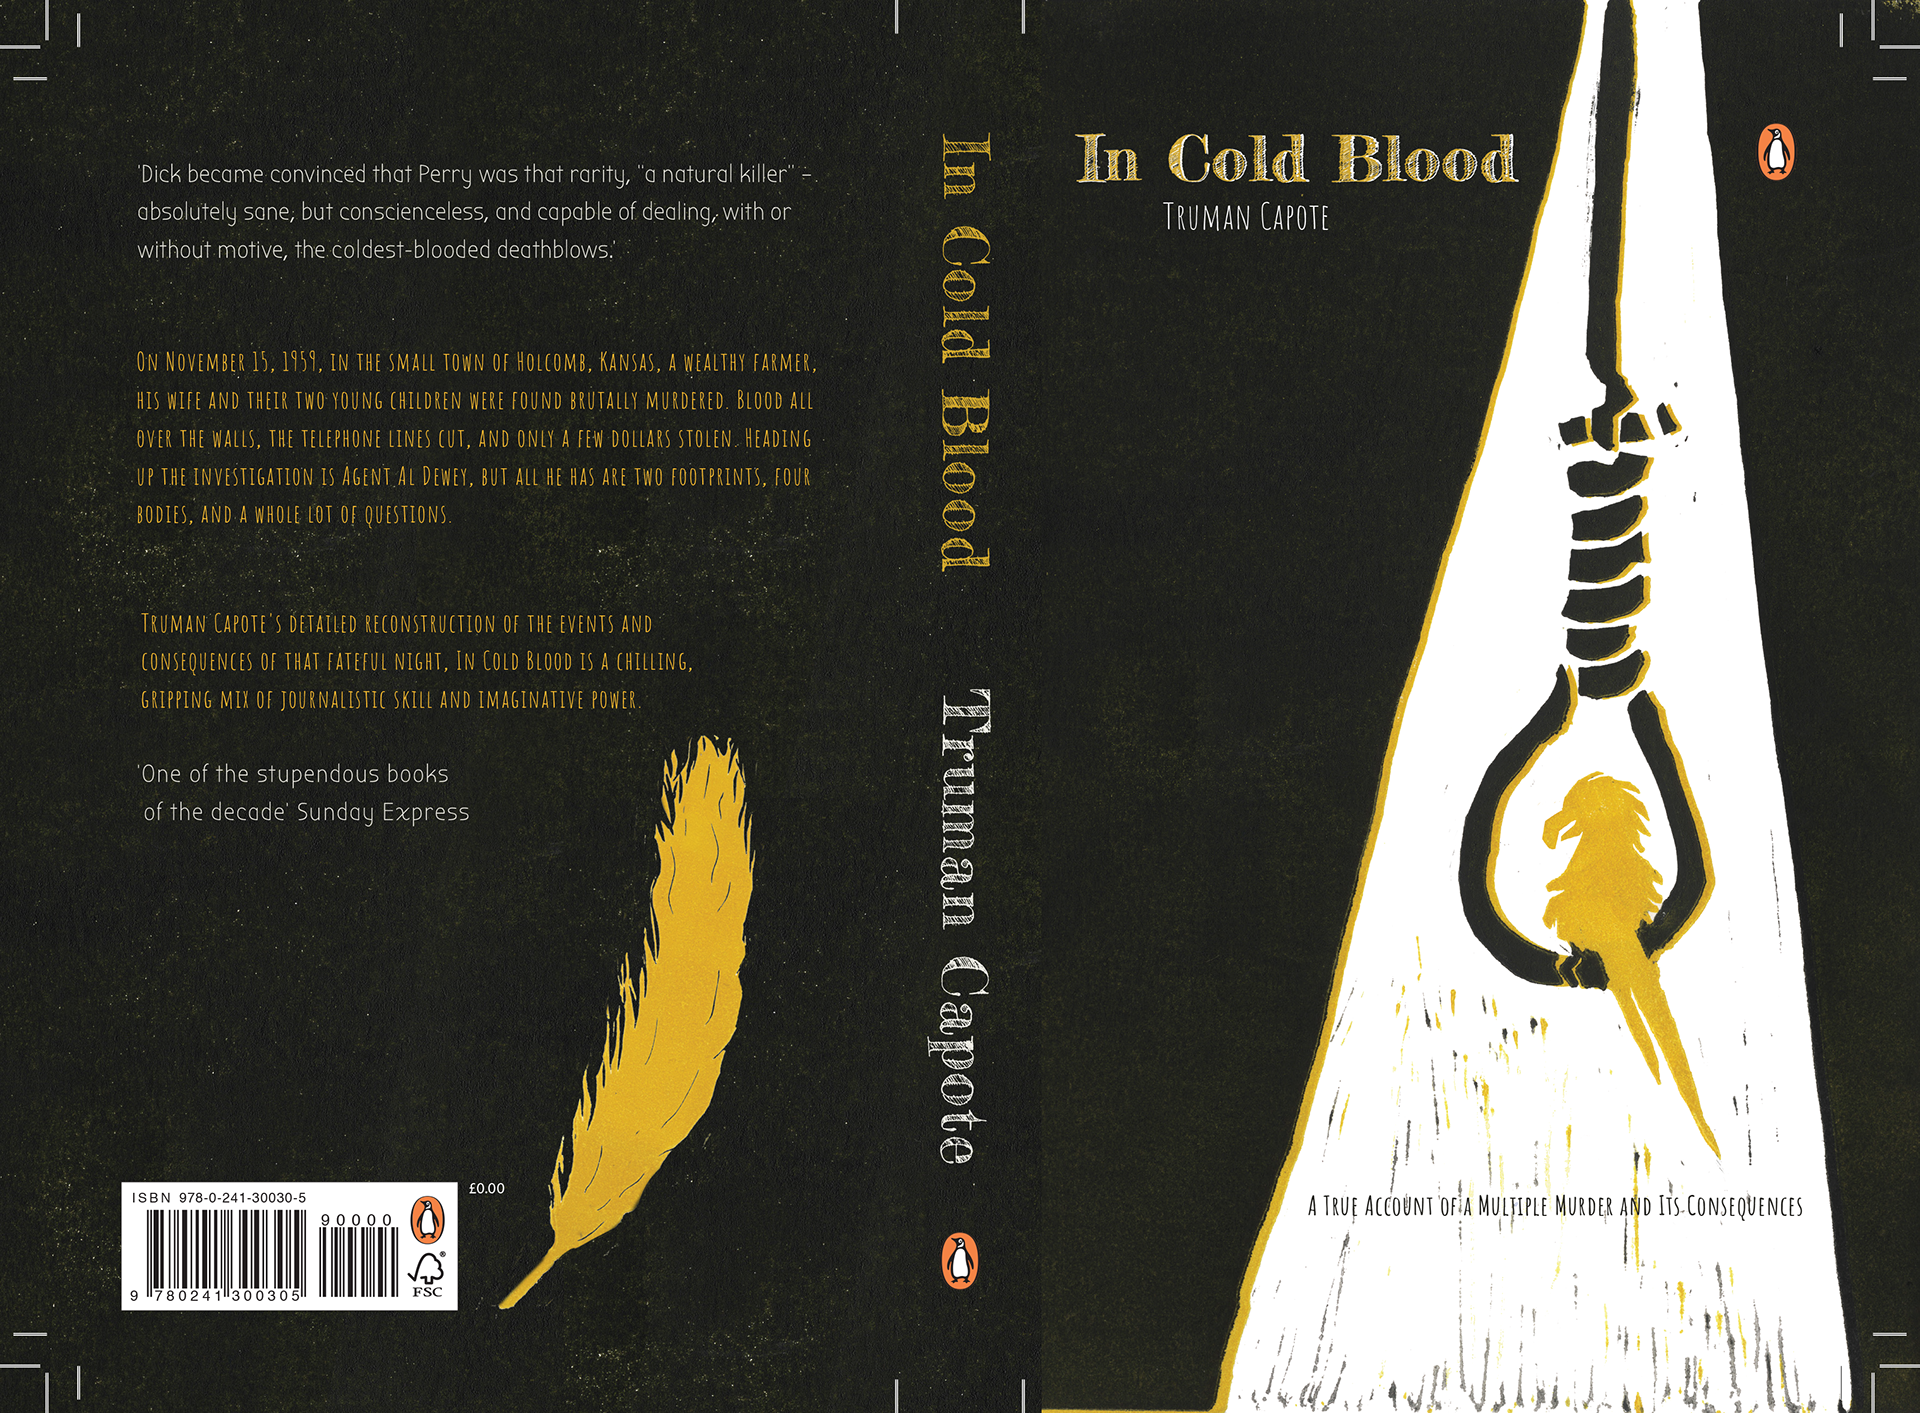 Penguin Book Cover Competition : Anna jean mcdonald in cold blood penguin book cover